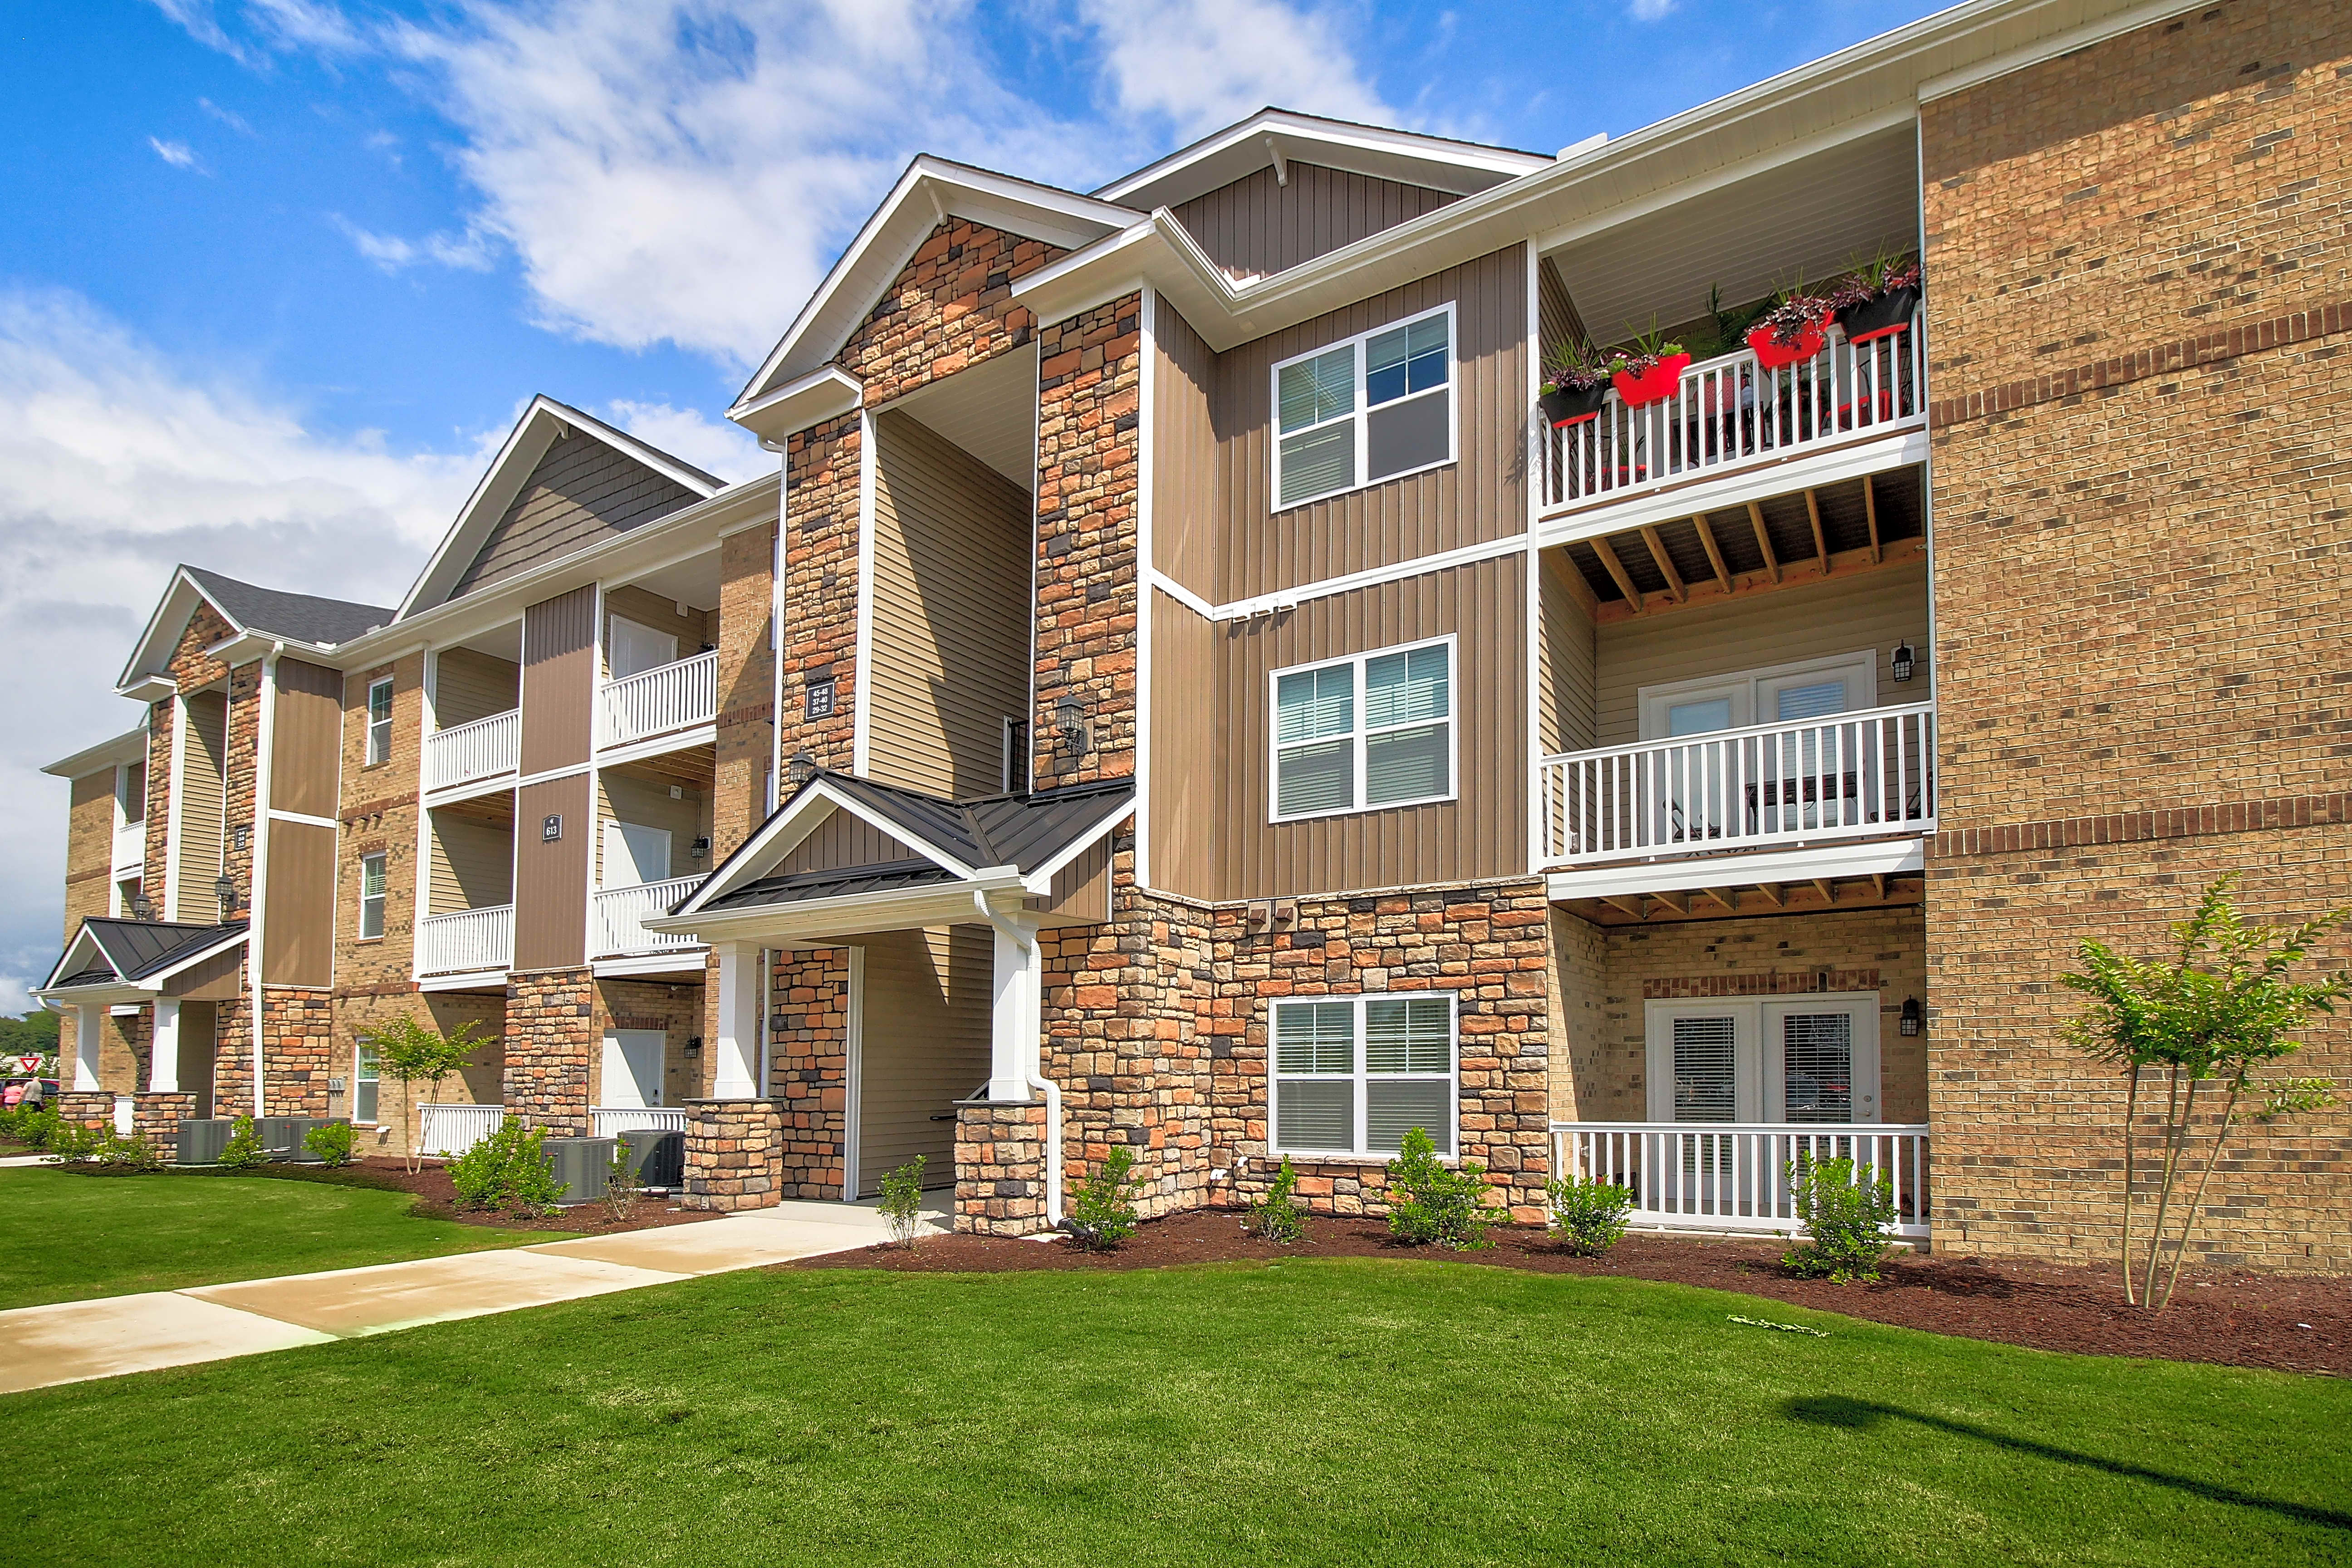 Greenville, NC Off-Campus Housing | College Rentals